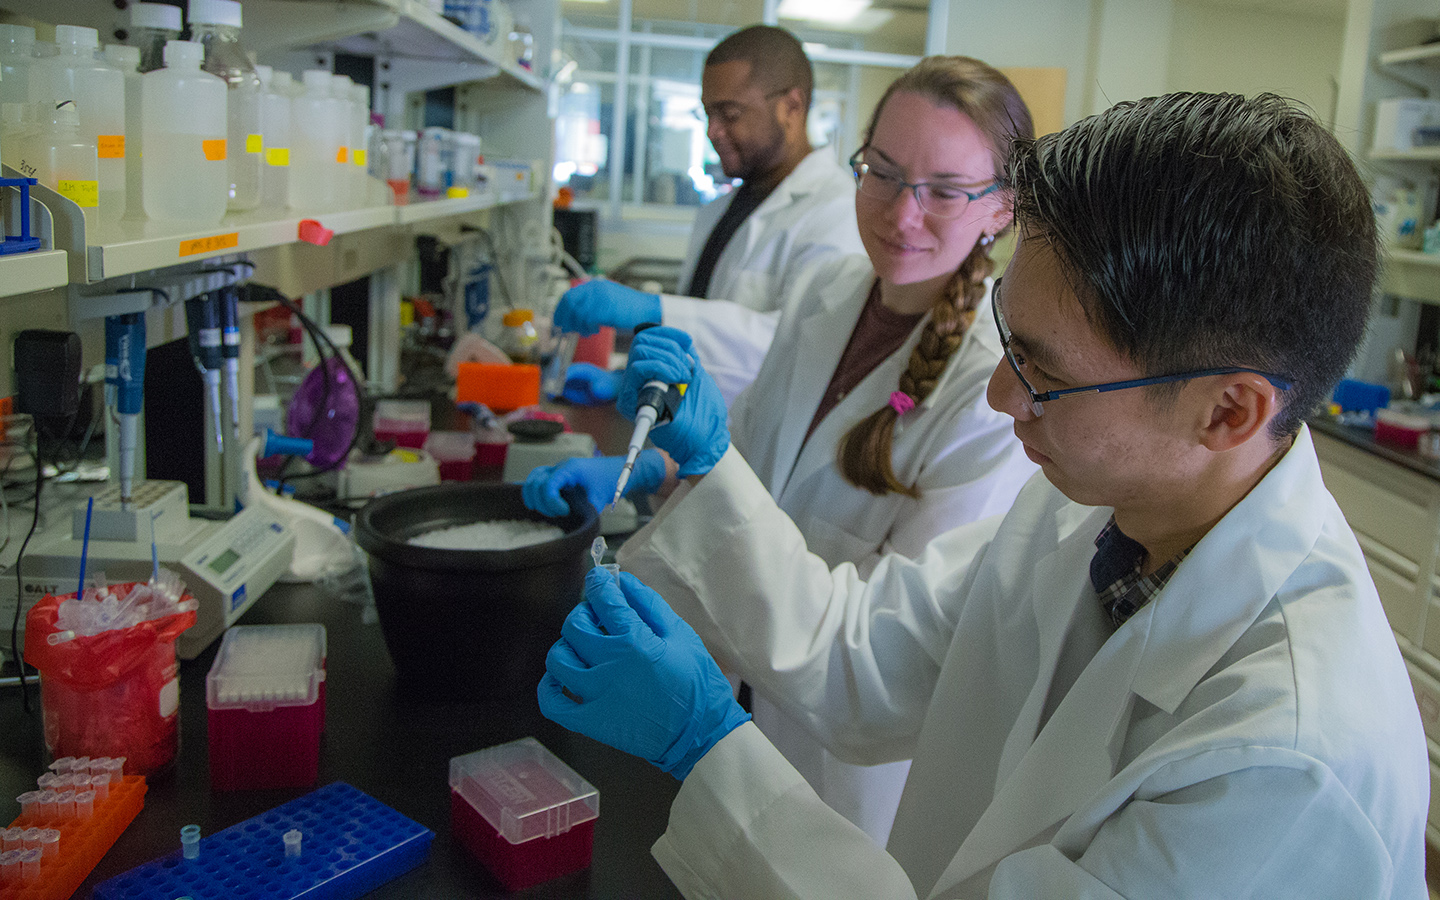 student working together at the lab bench